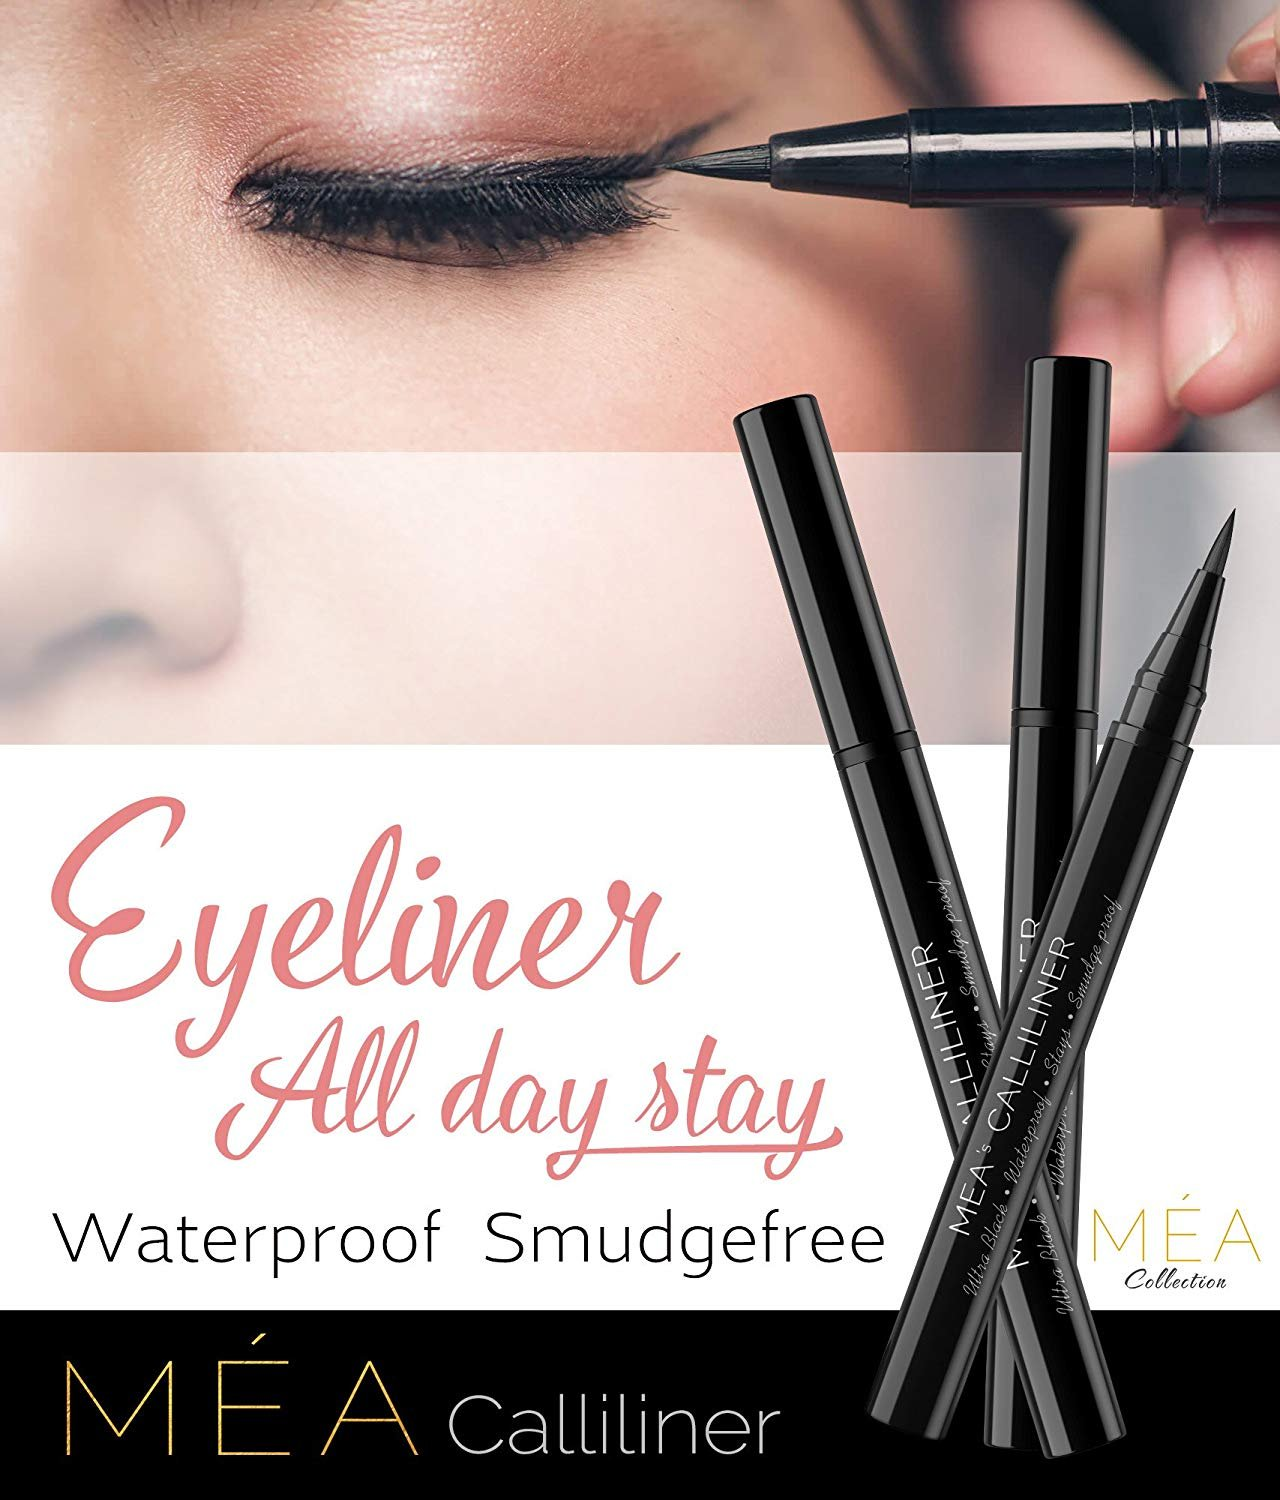 PRIME WEEK SPECIAL - Waterproof Liquid Eyeliner - Mea's Calliliner Semi Permanent Ultra Black Eye Liner, Prestige All Day Stay Brush giving you that Wild & Intense Covergirl Beauty - Glitter free Glos Méa Collection